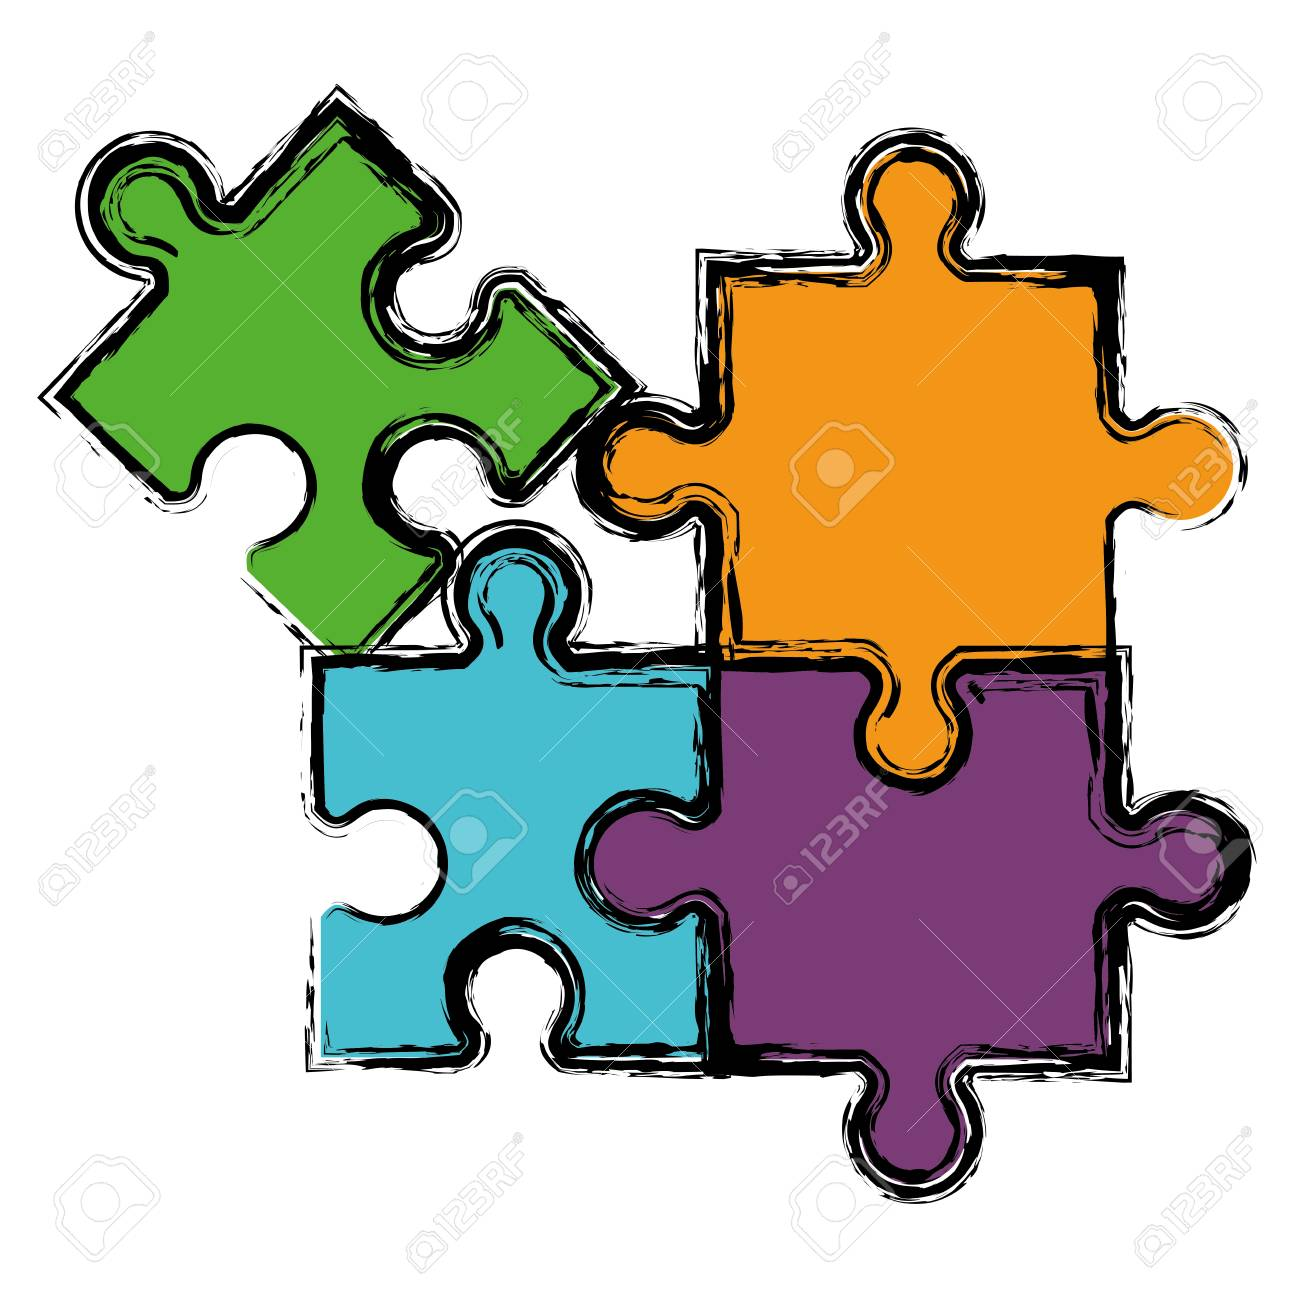 Vector Shapes Of Jigsaw Puzzle Pieces; Jigsaw Puzzle.